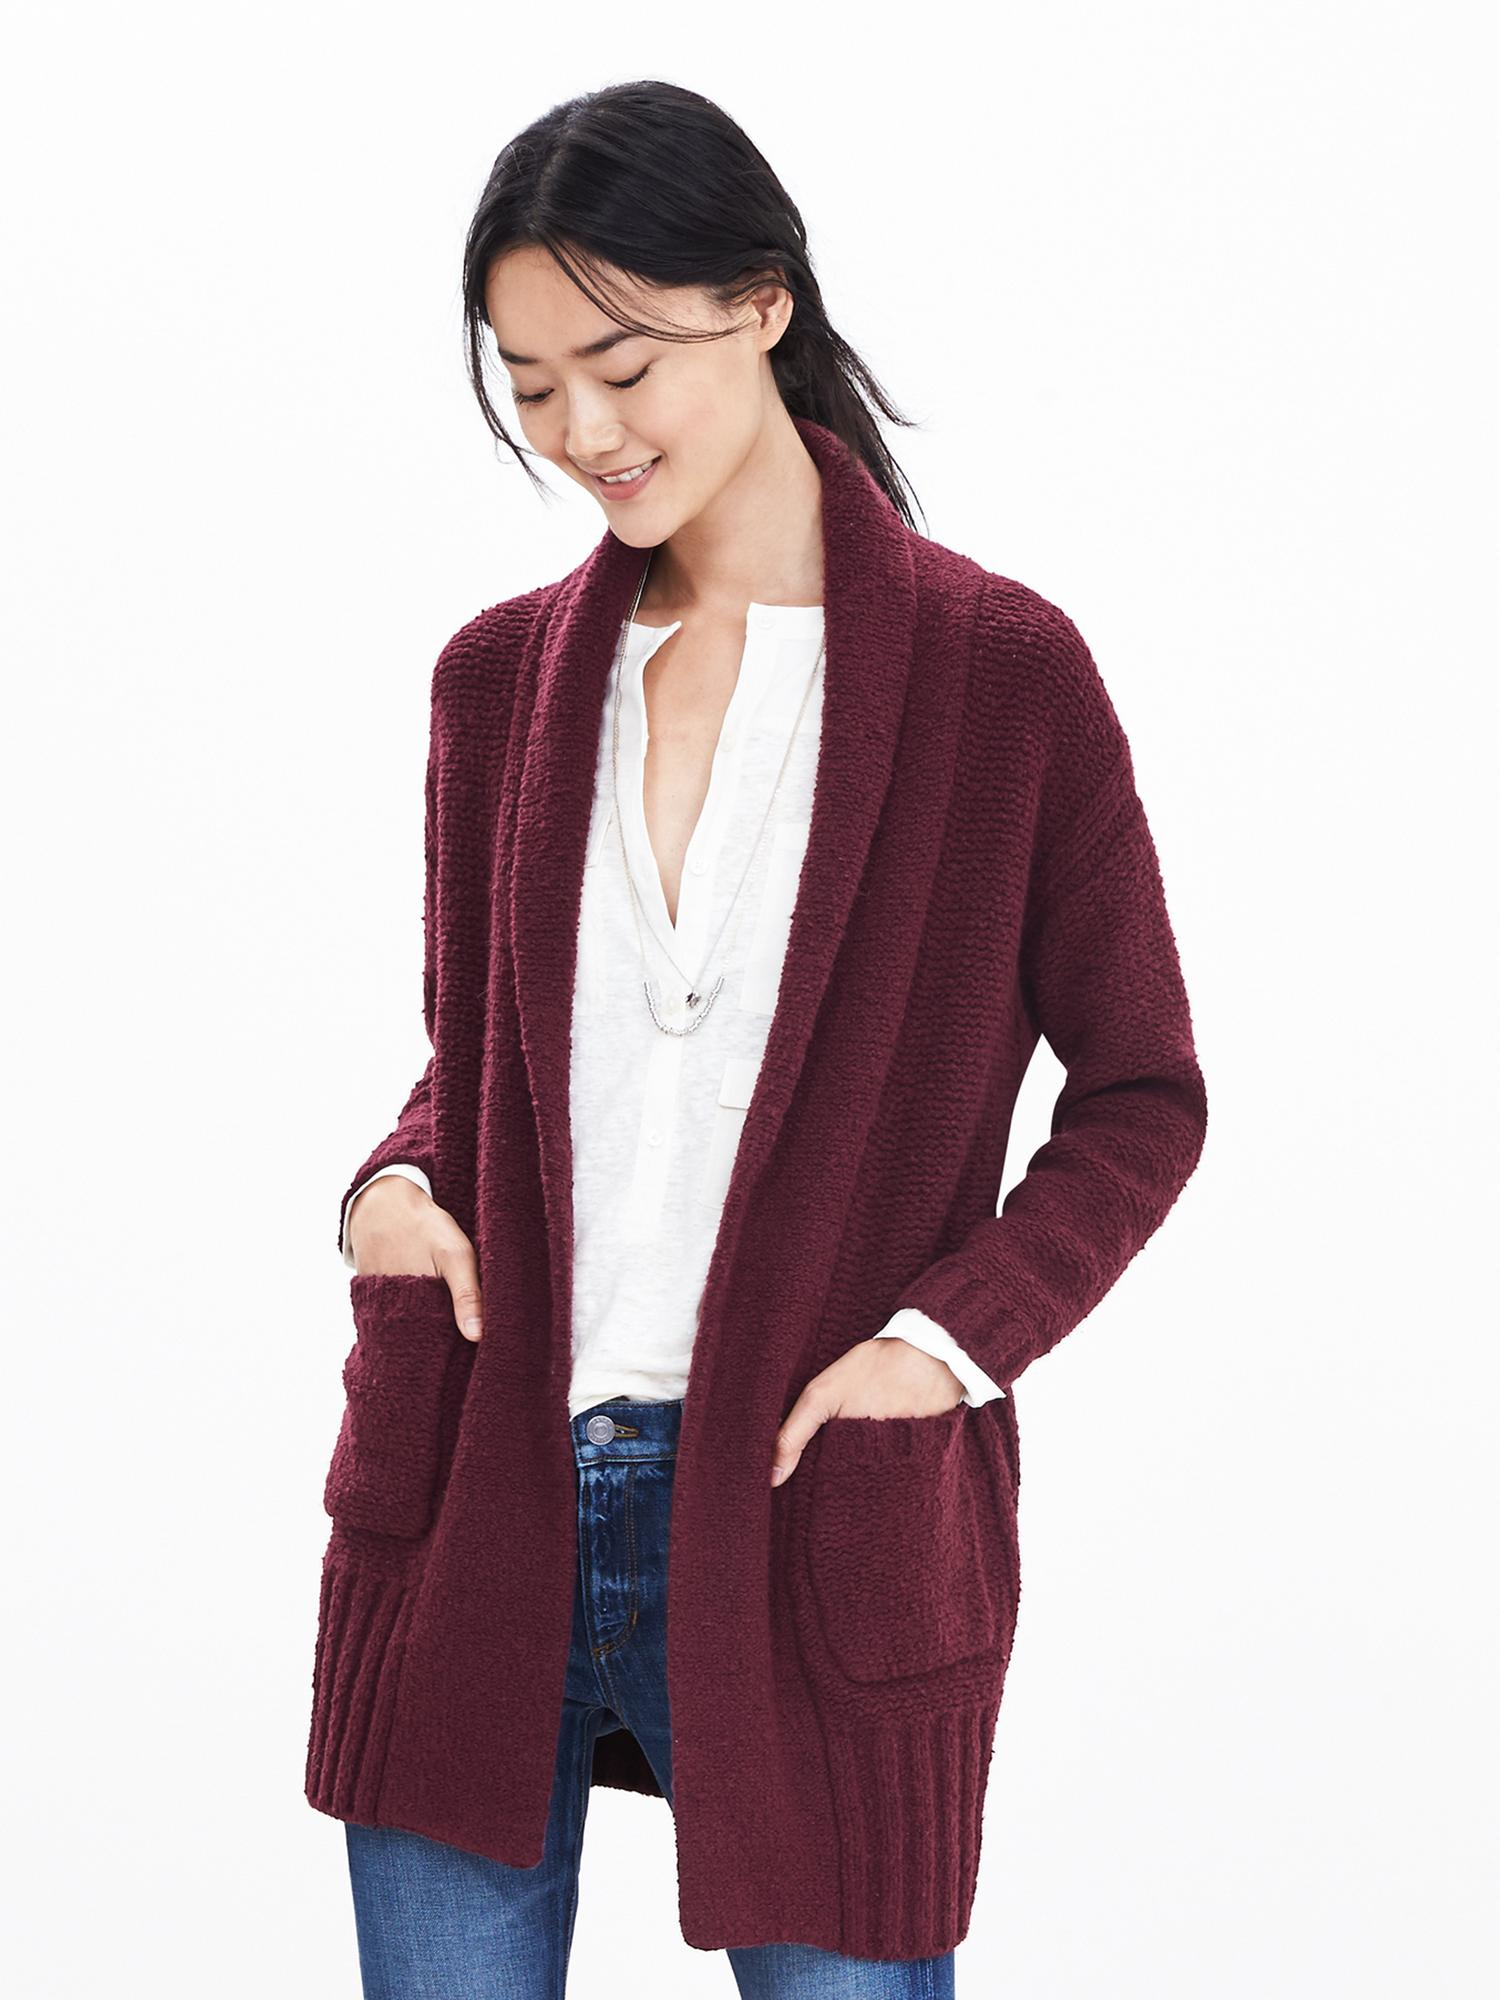 Lose yourself in luxury with versatile all-season sweaters and cardigans in soft cashmere, machine-washable Merino wool and silk-cotton blends. Petite sizes available.